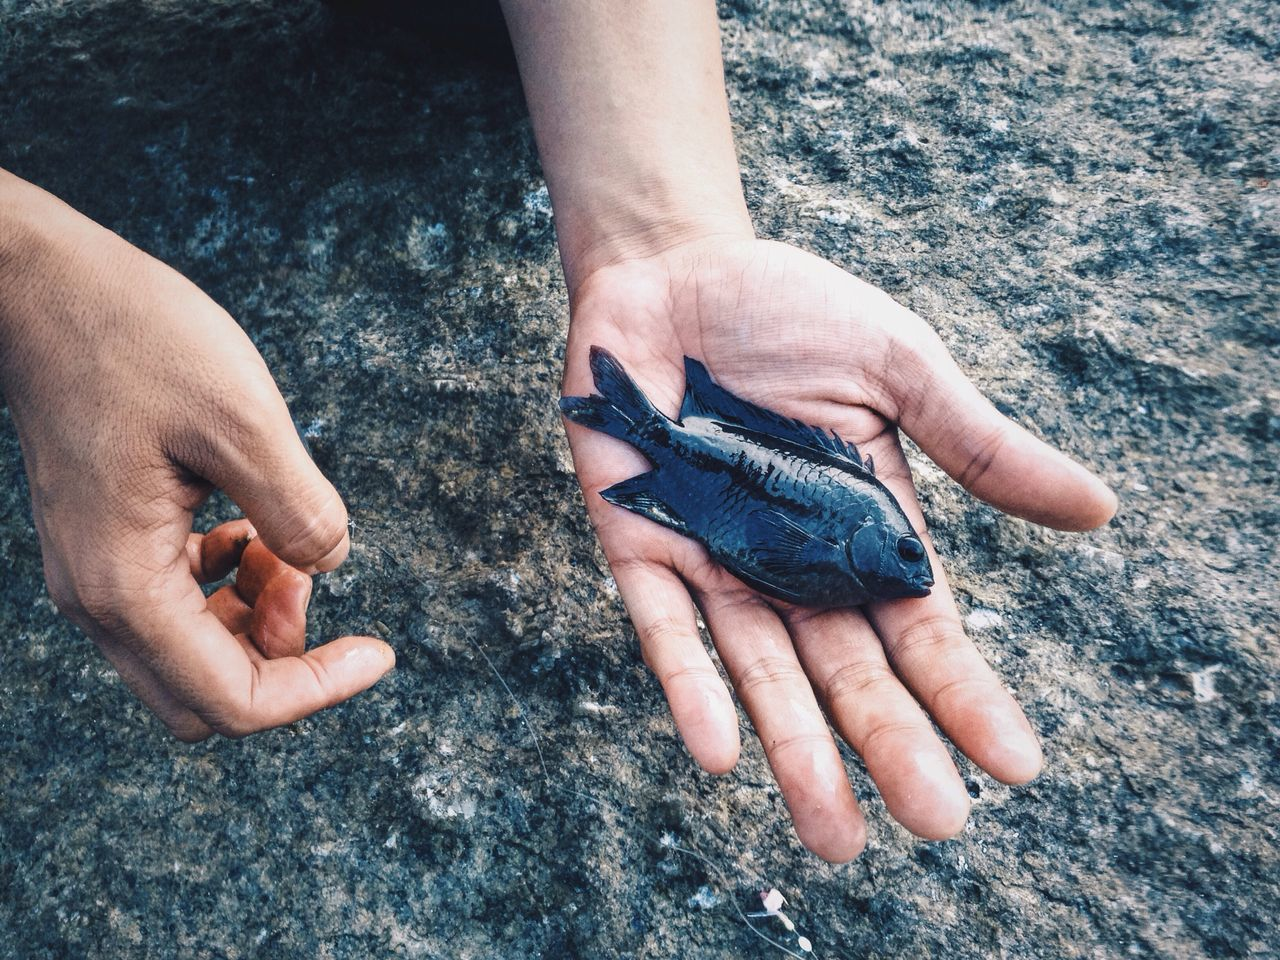 Close-up of hand holding dead fish